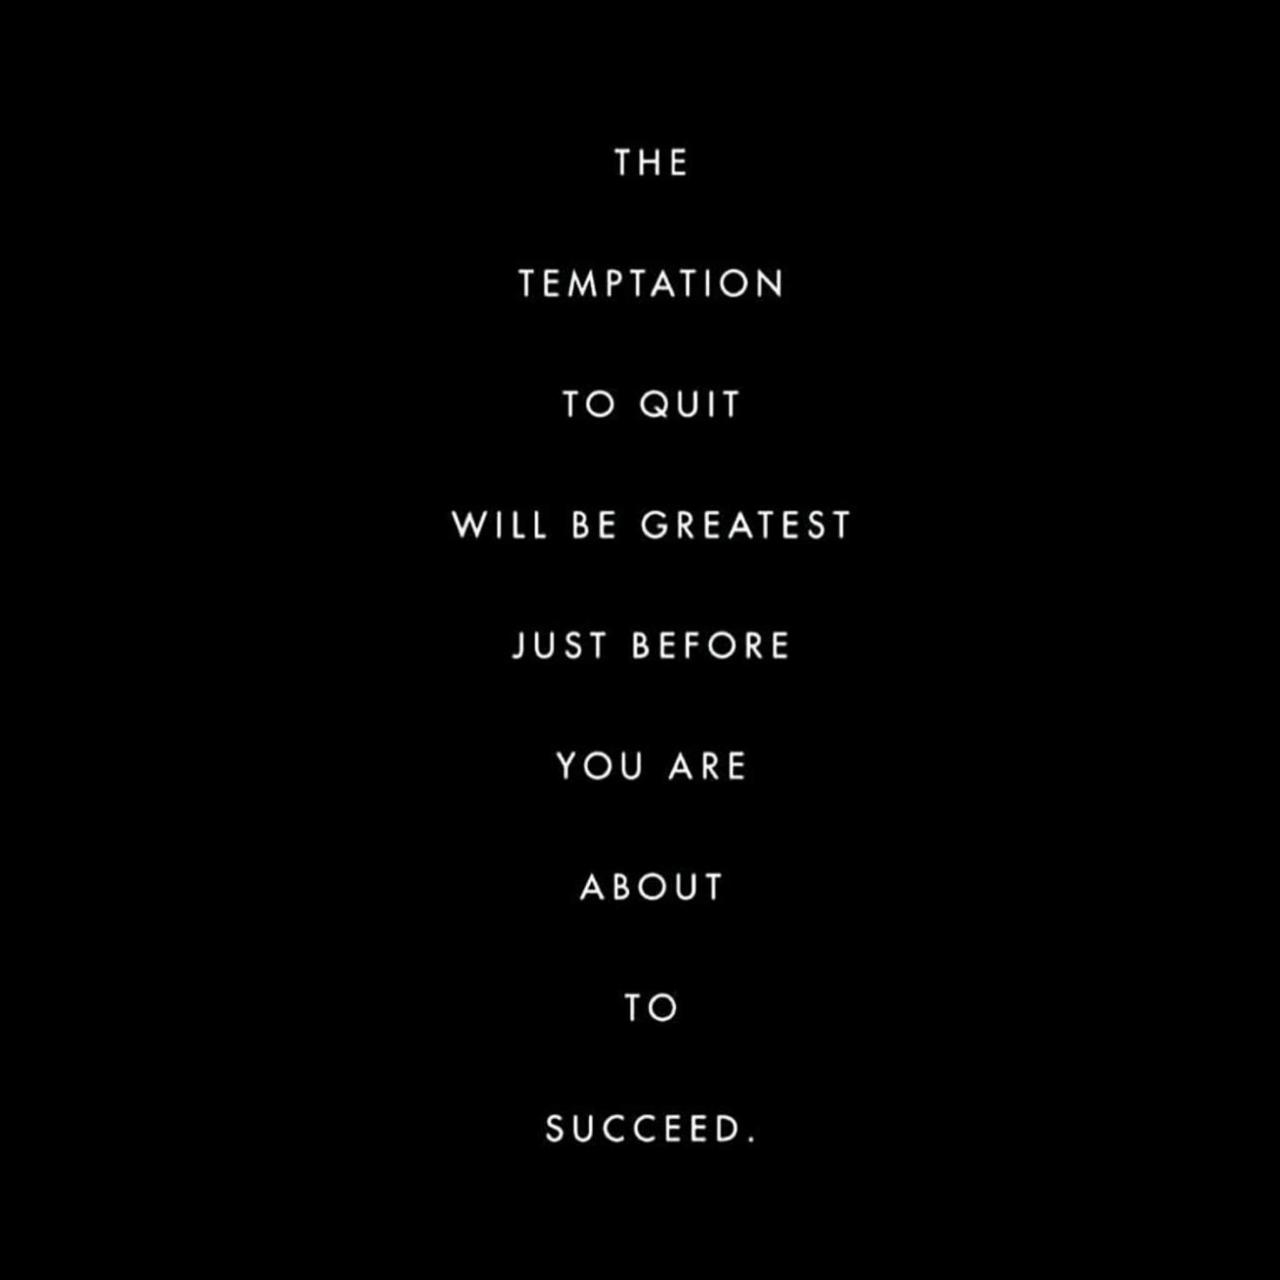 [Image] Don't get tempted to quit